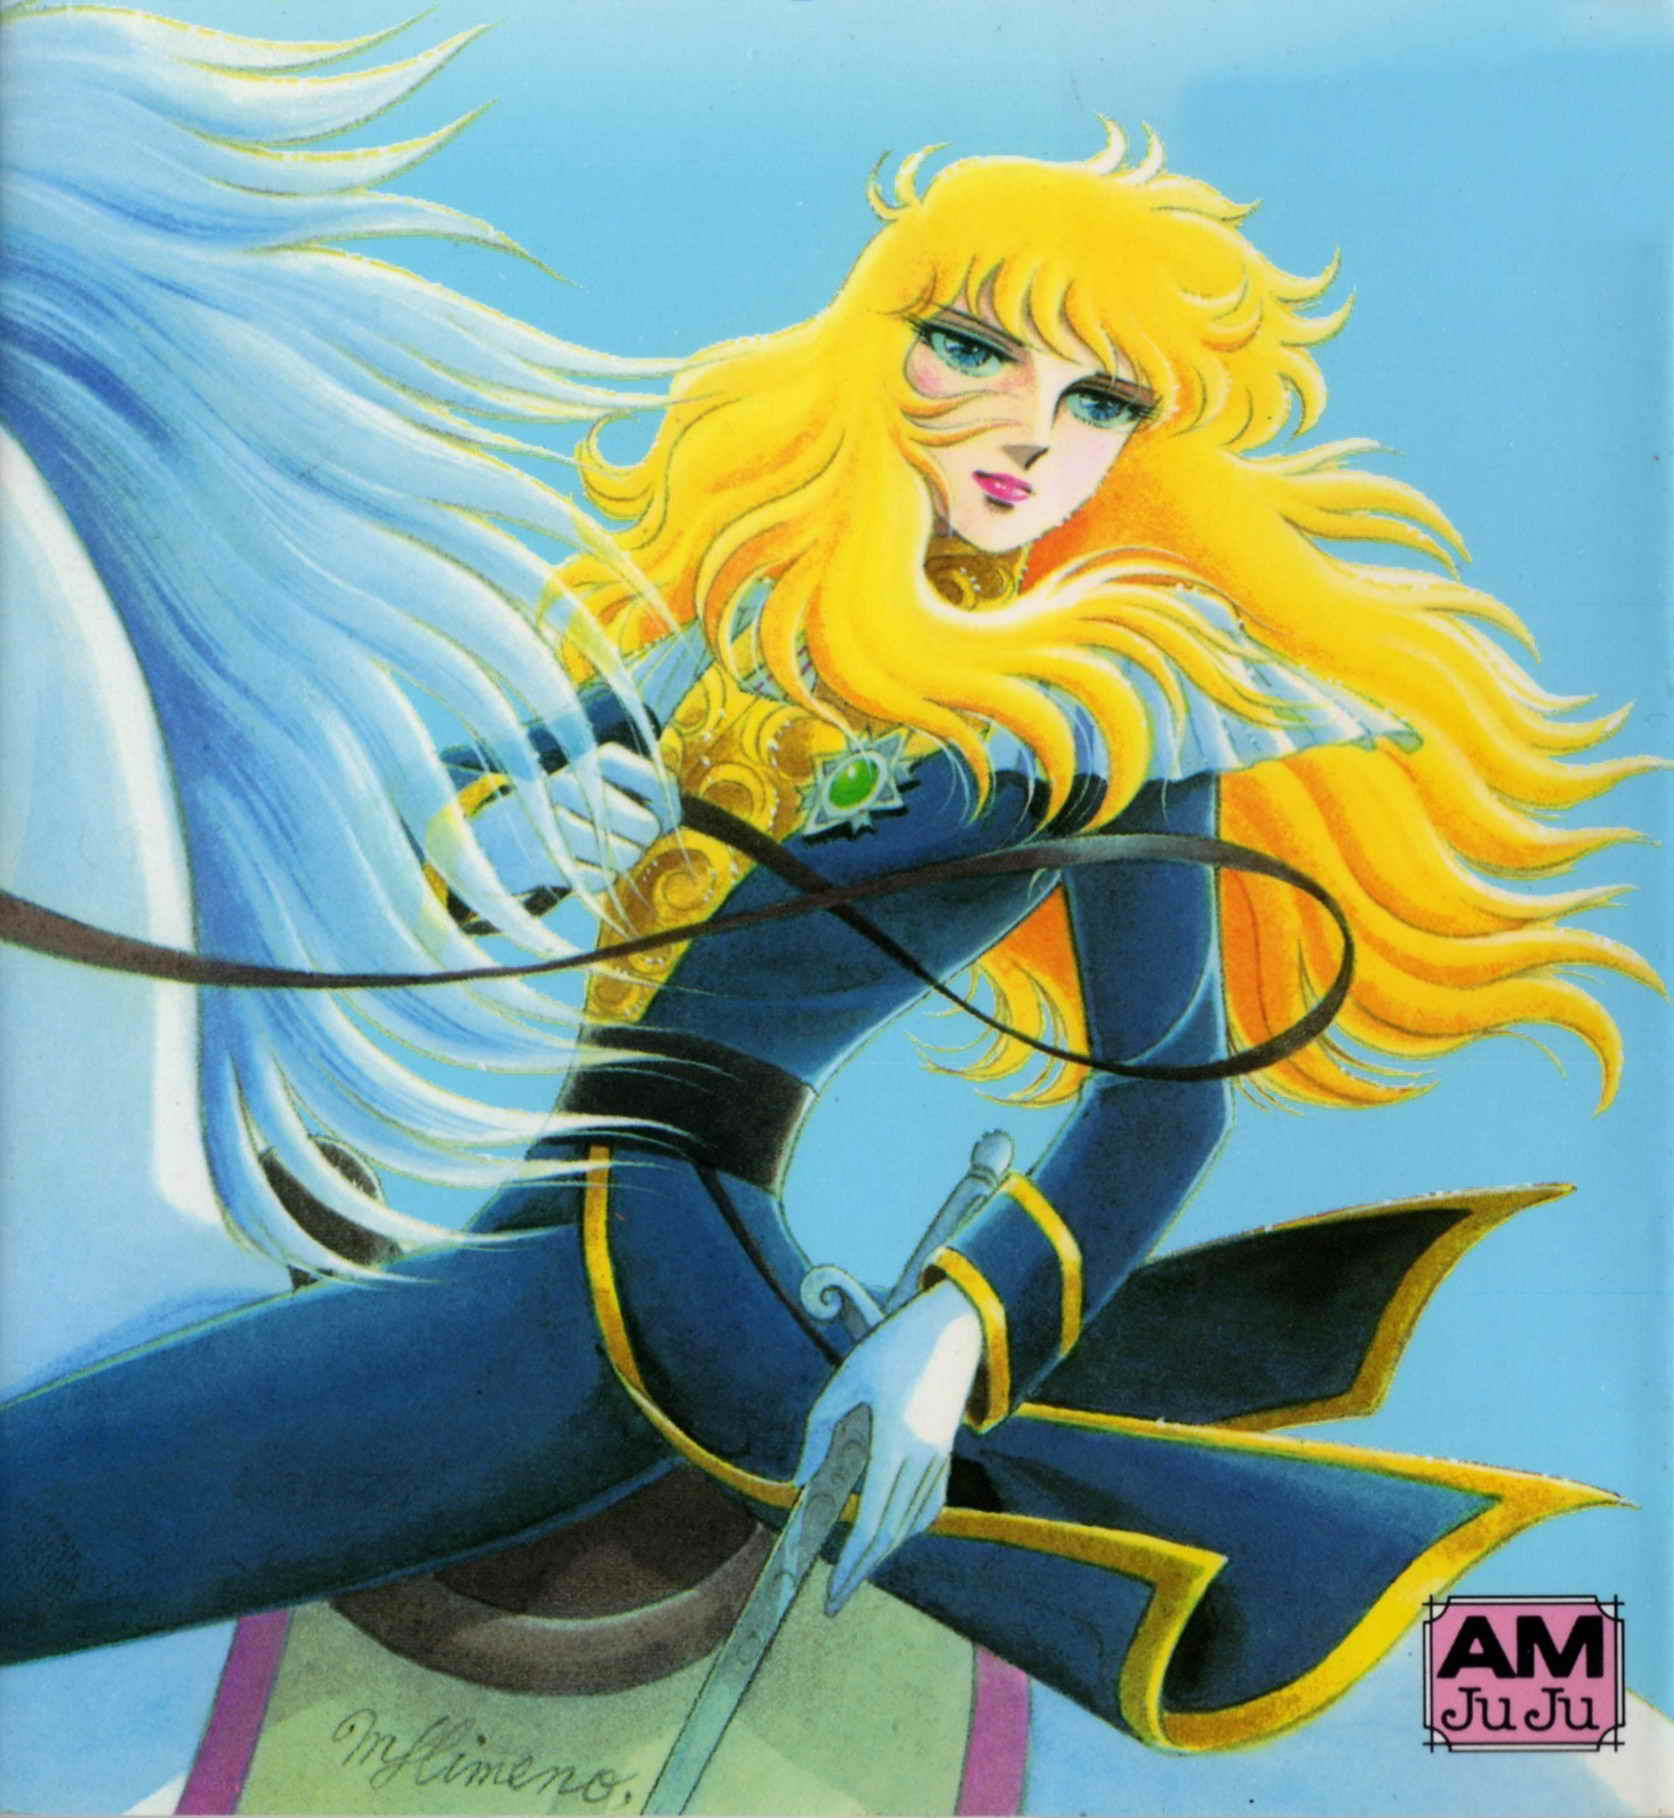 The Rose Of Versailles Episode 40: صور ليـــدي أوسكــــار